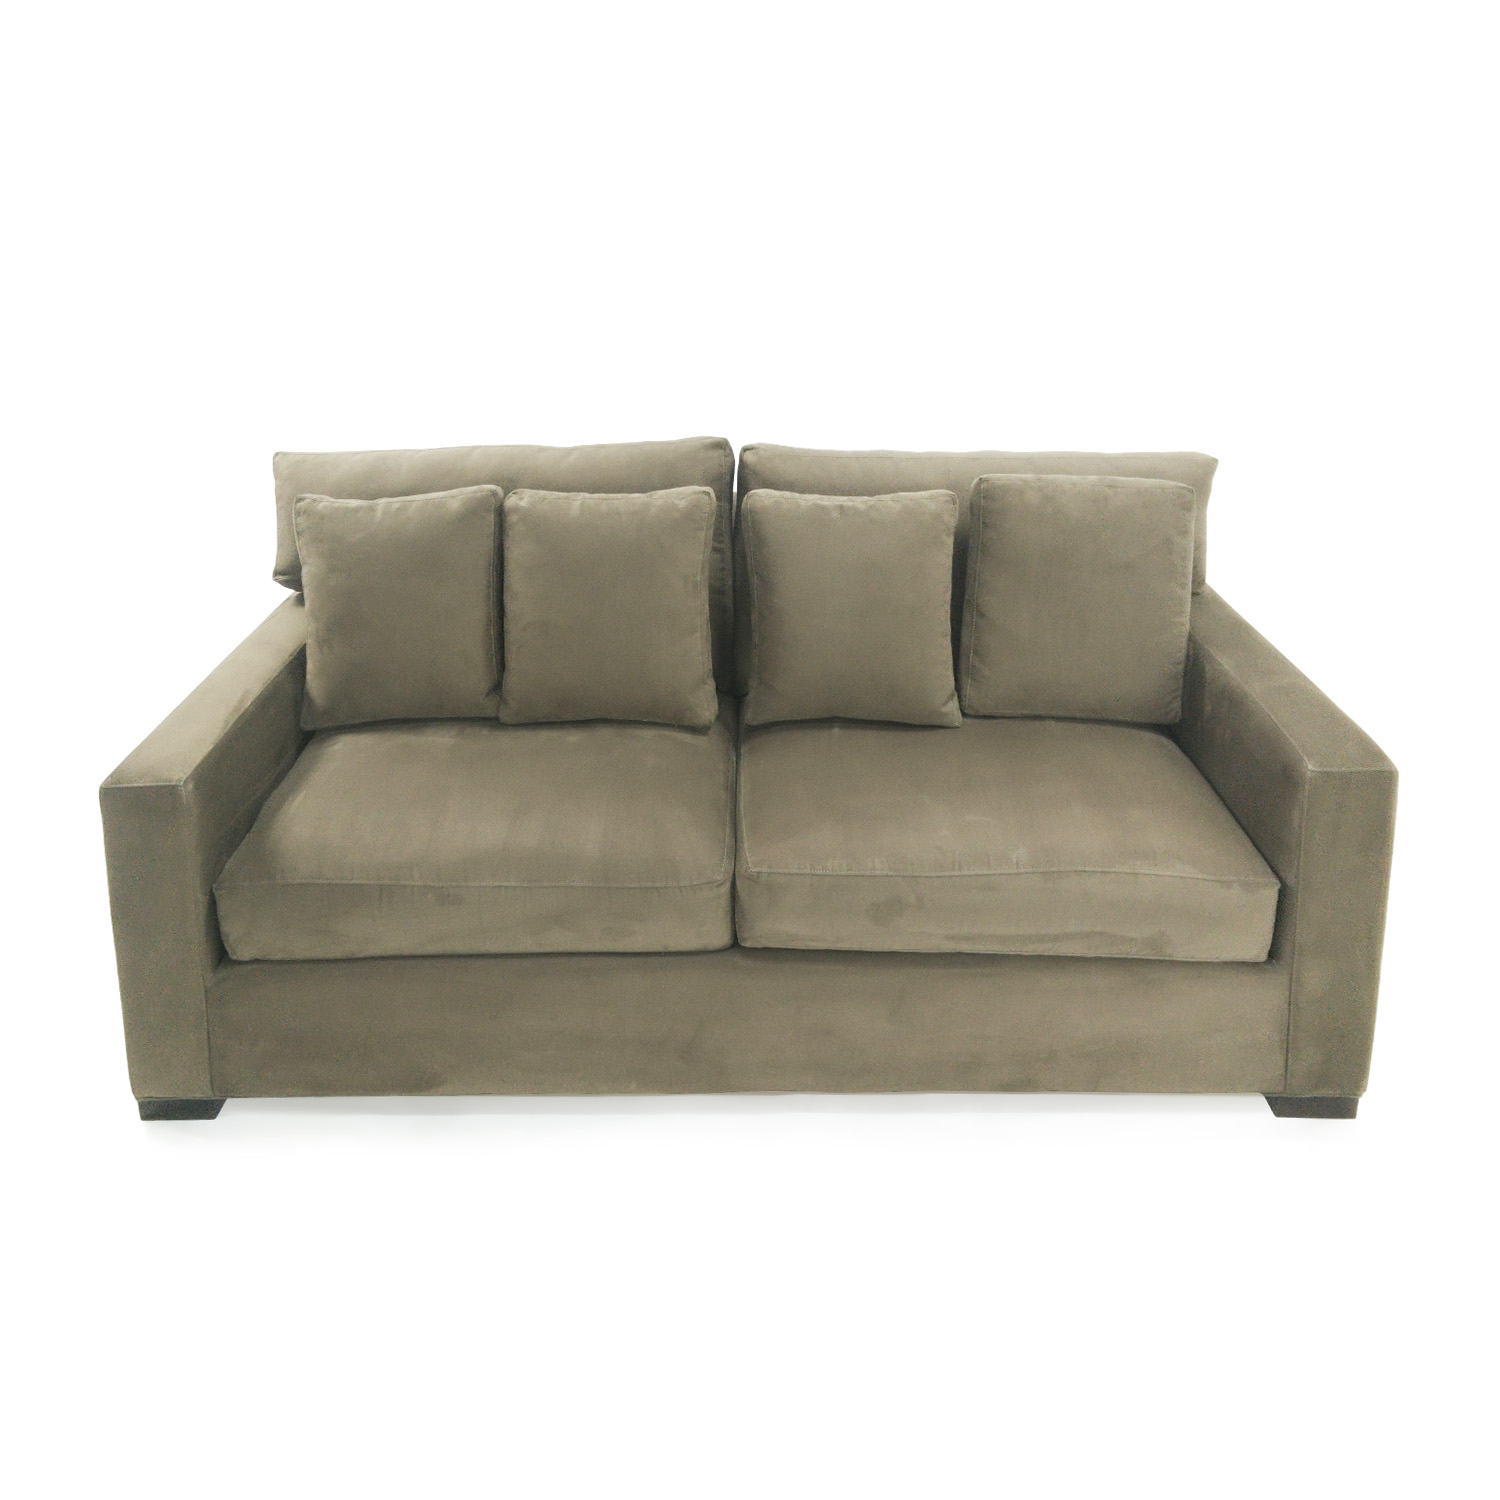 Crate And Barrel Crate U0026 Barrel Axis II Seat Sofa Classic Sofas